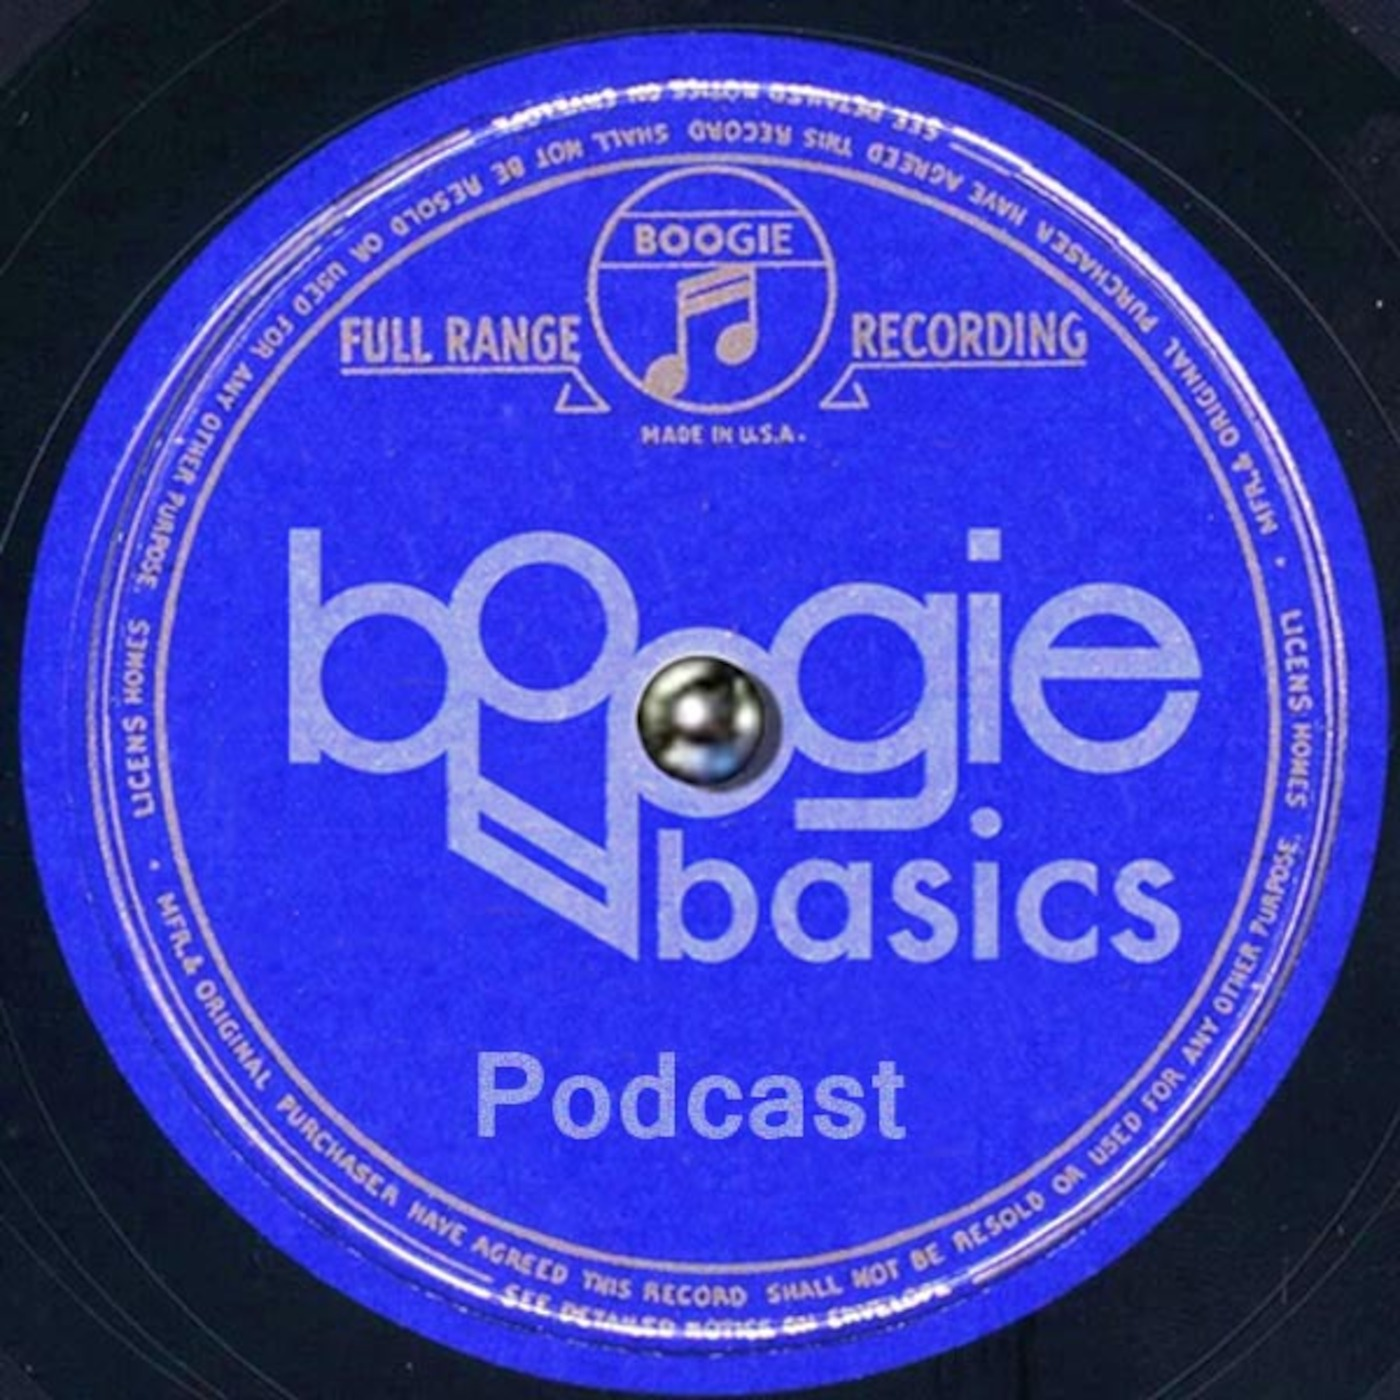 Boogie Basics Podcast